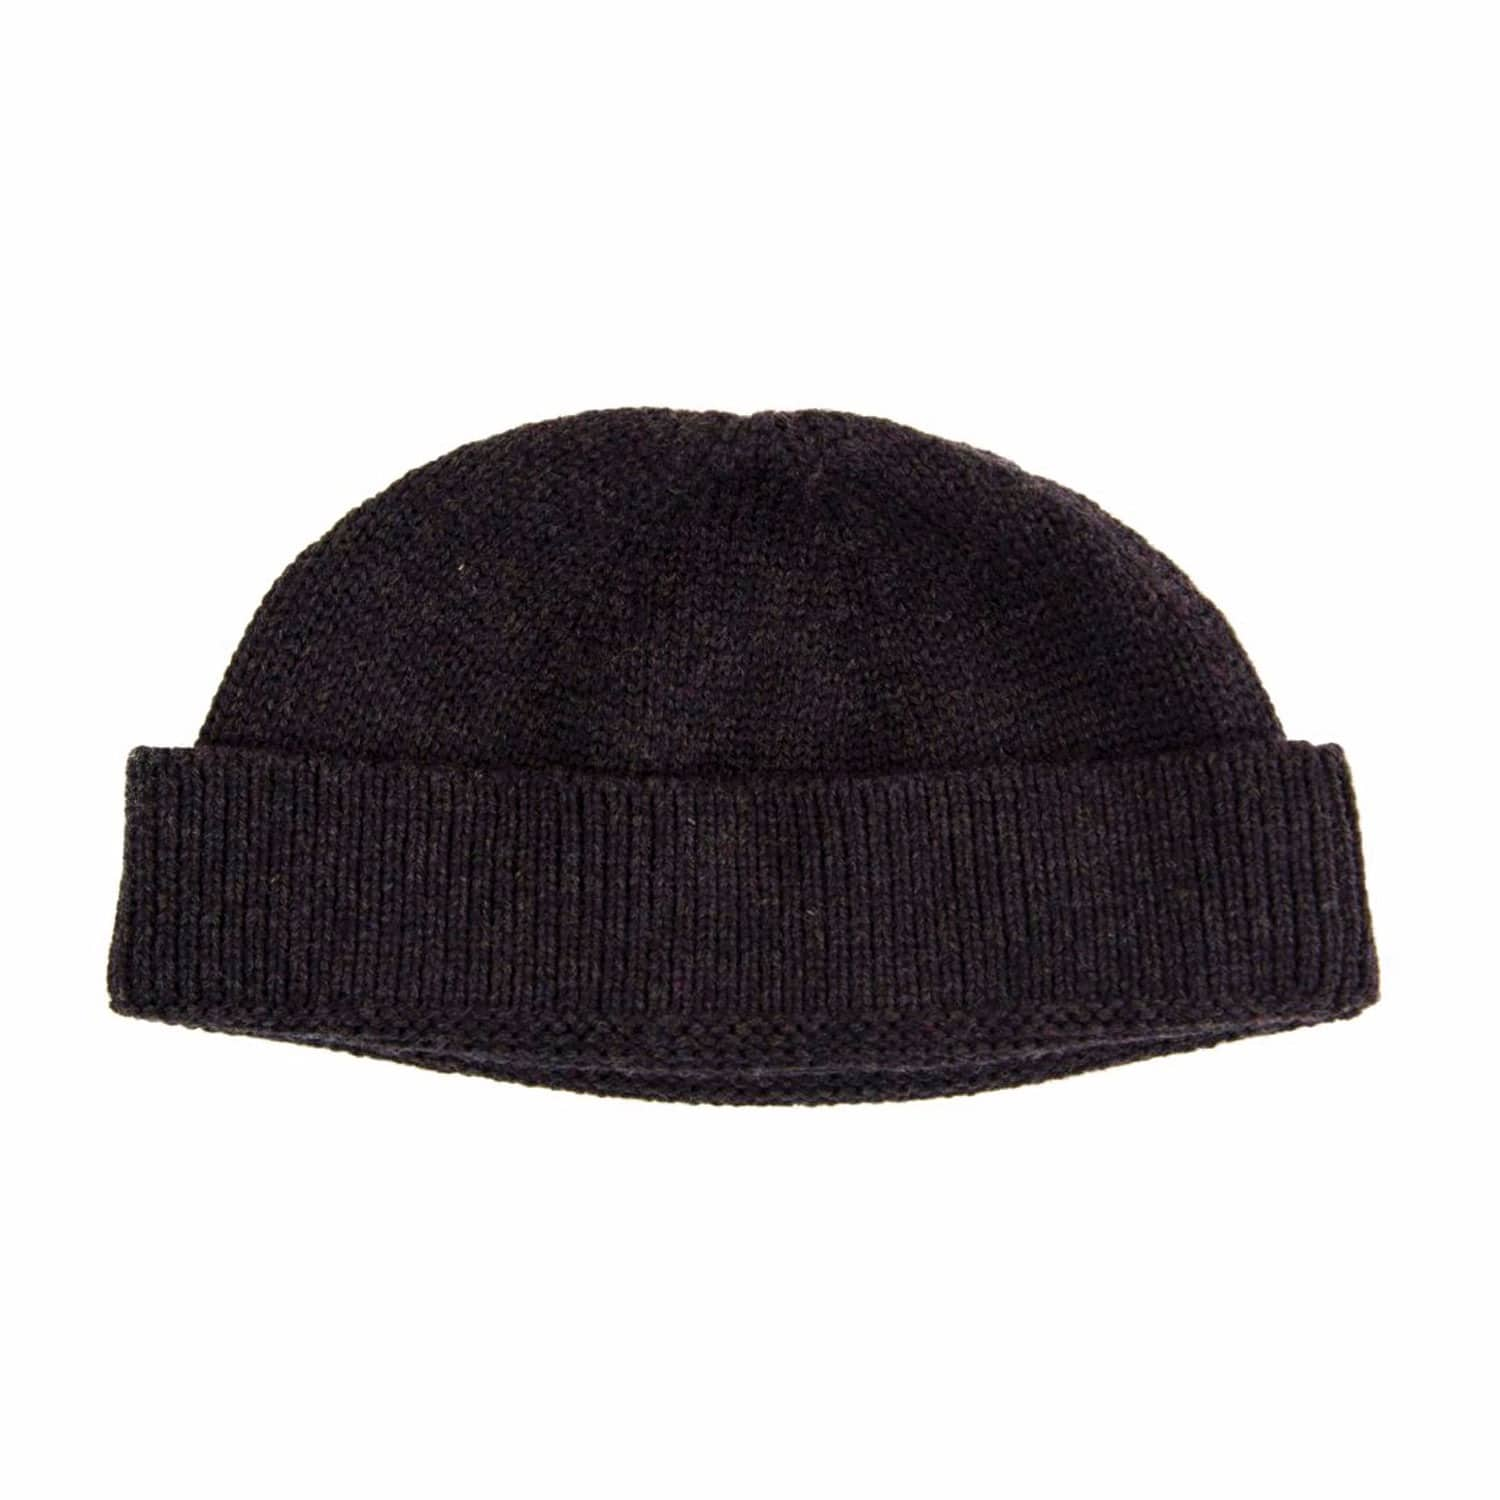 Charcoal Solid Wool Fisherman Beanie image 20711c9f24b